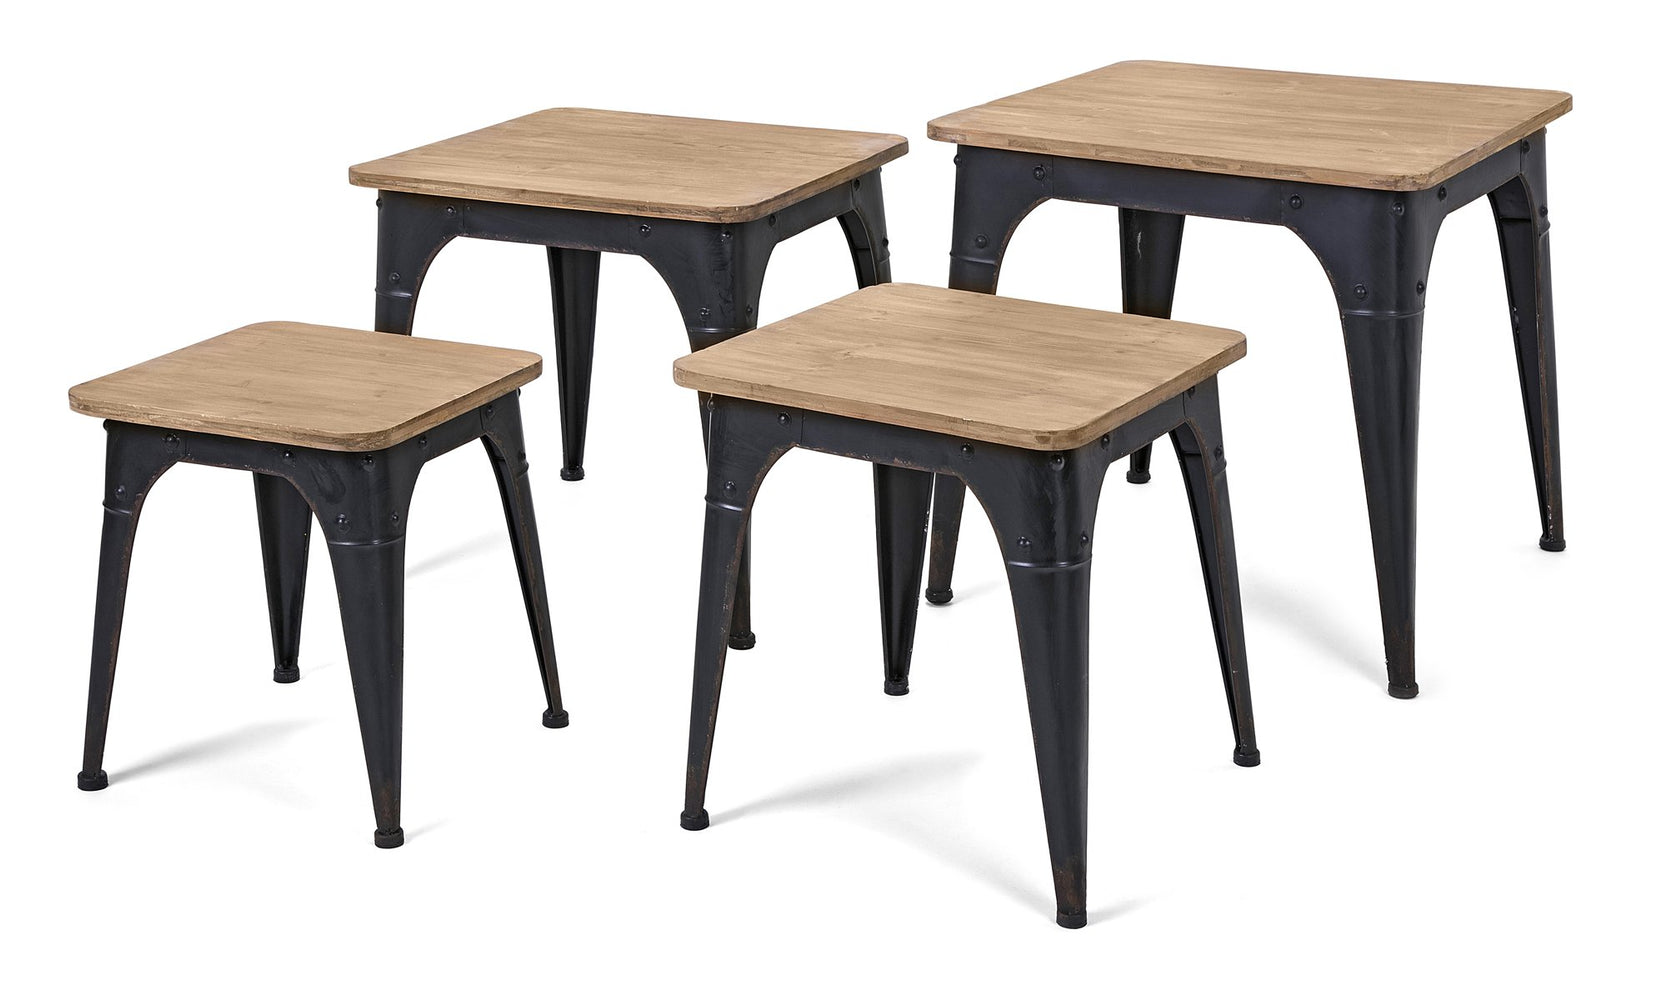 Harlow-Wood-and-Metal-Nesting-Display-Tables